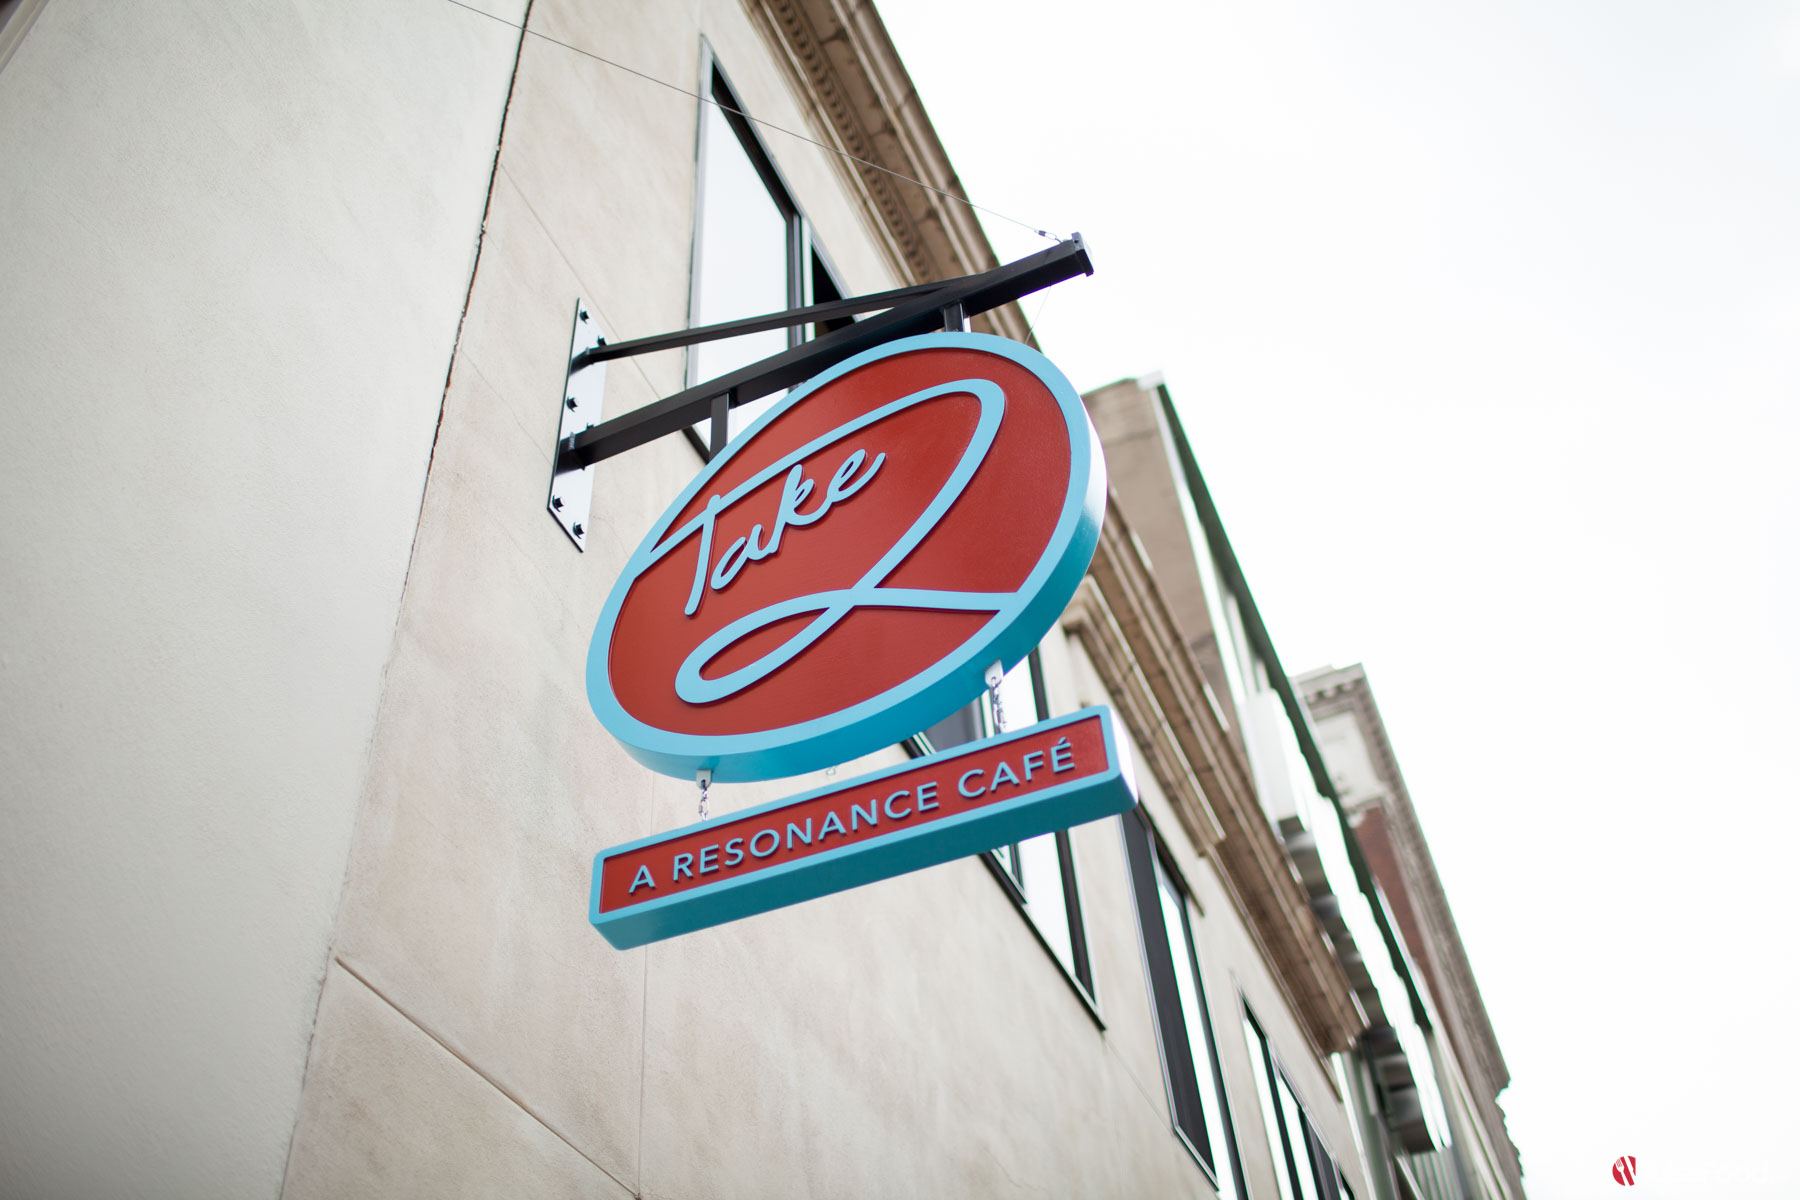 Take 2 Café Serves up Sandwiches and Second Chances - Tulsa Food